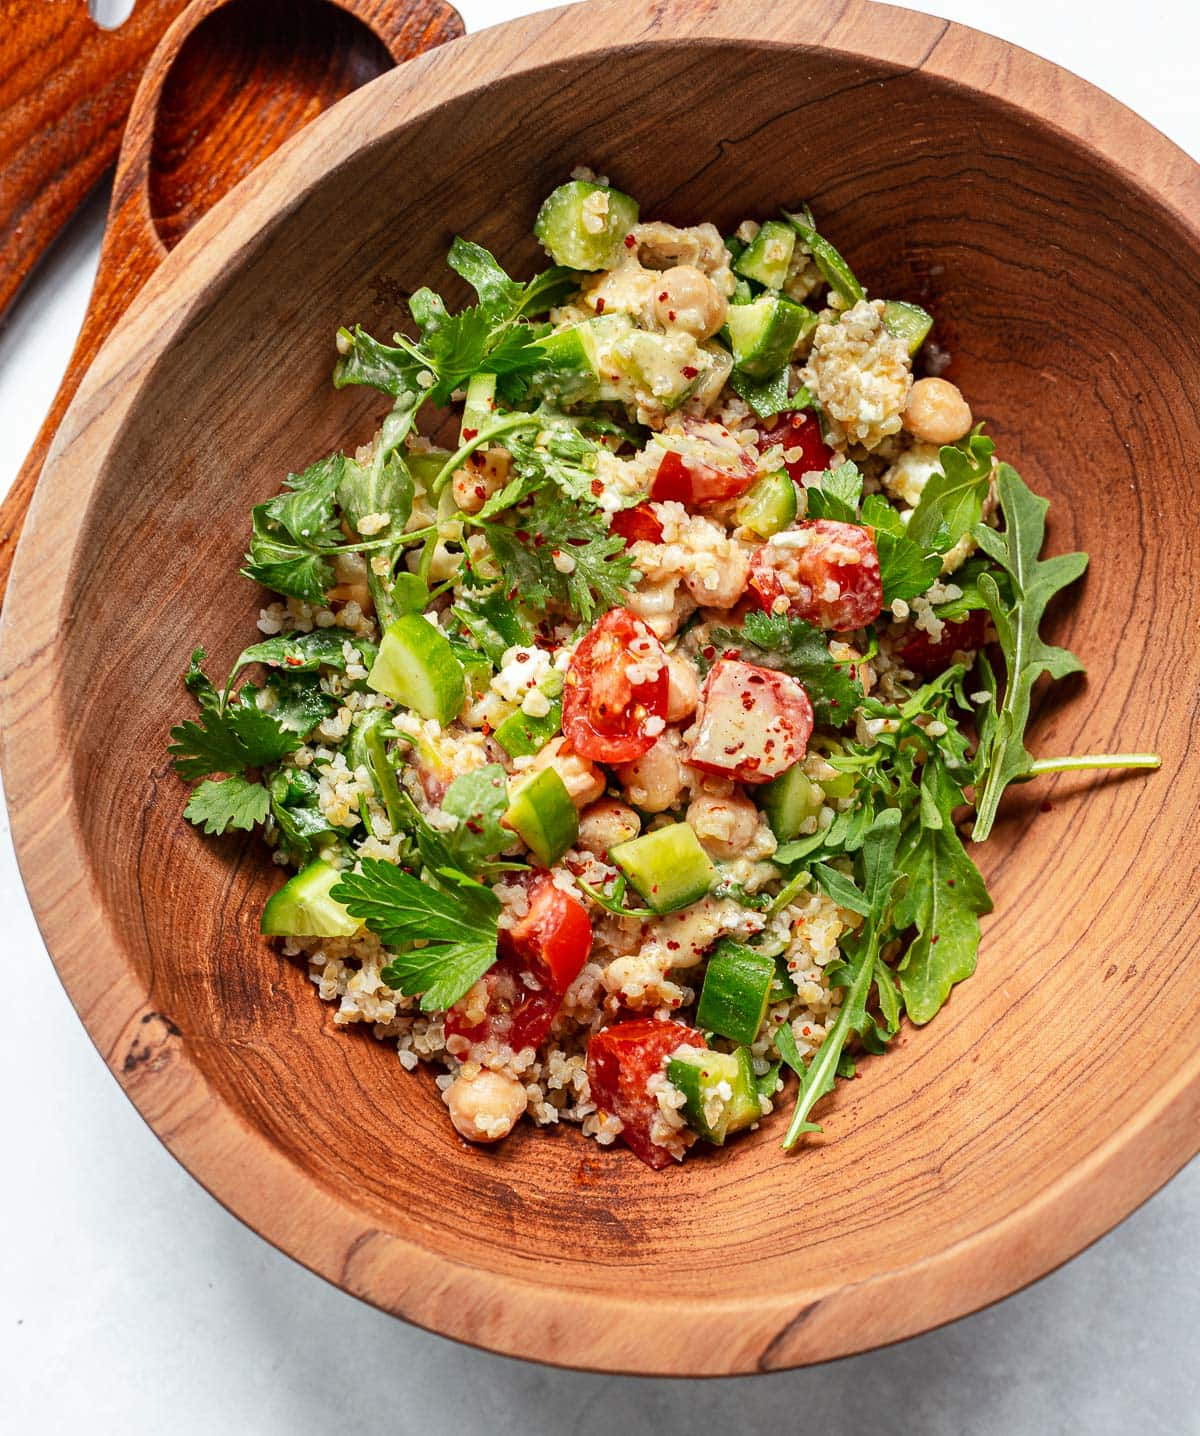 Mixed salad with bulgur wheat, vegetables and tahini dressing in a large serving bowl with wood serving utensils